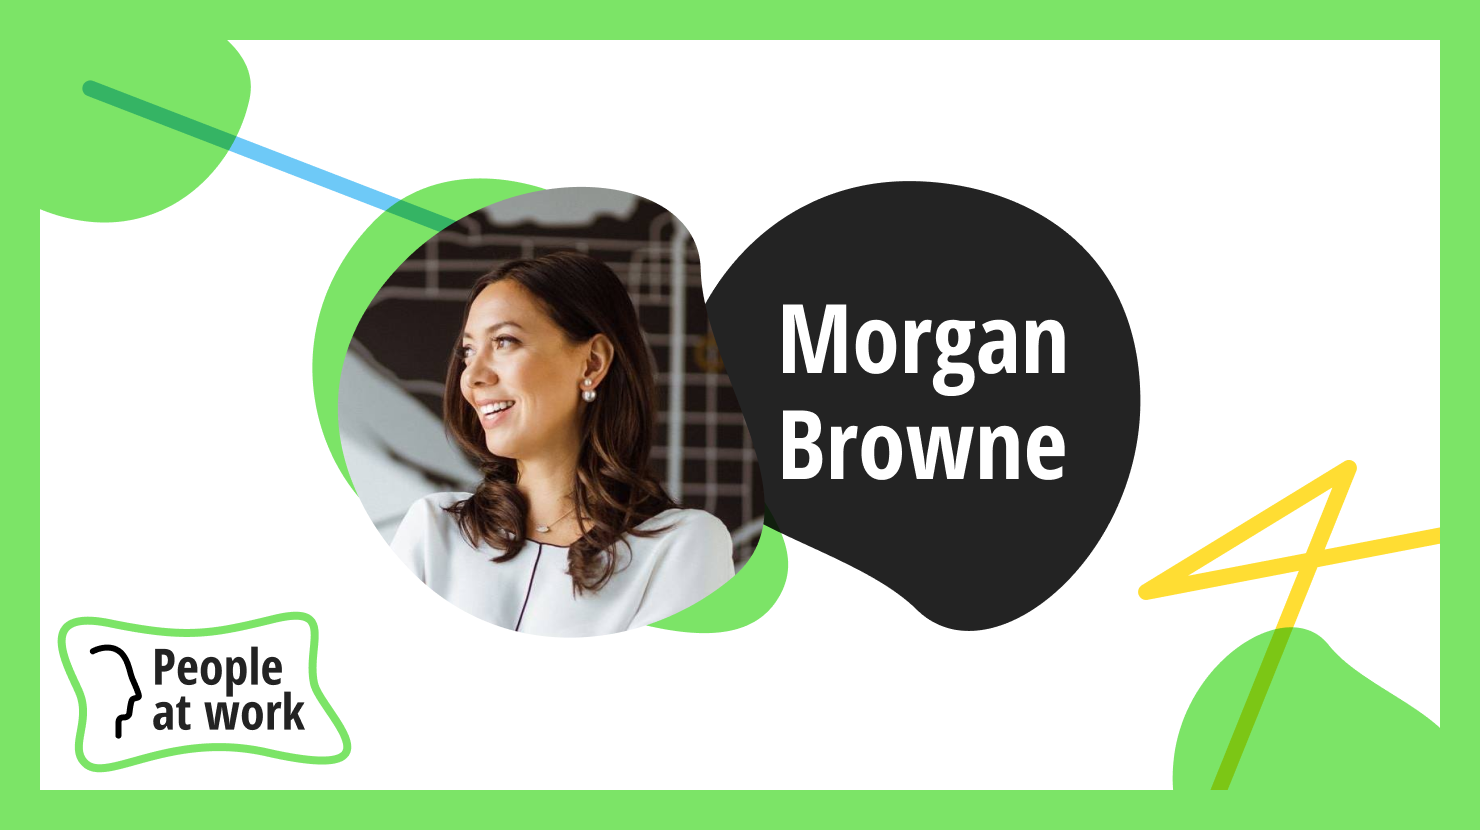 Starting with core values with Morgan Browne